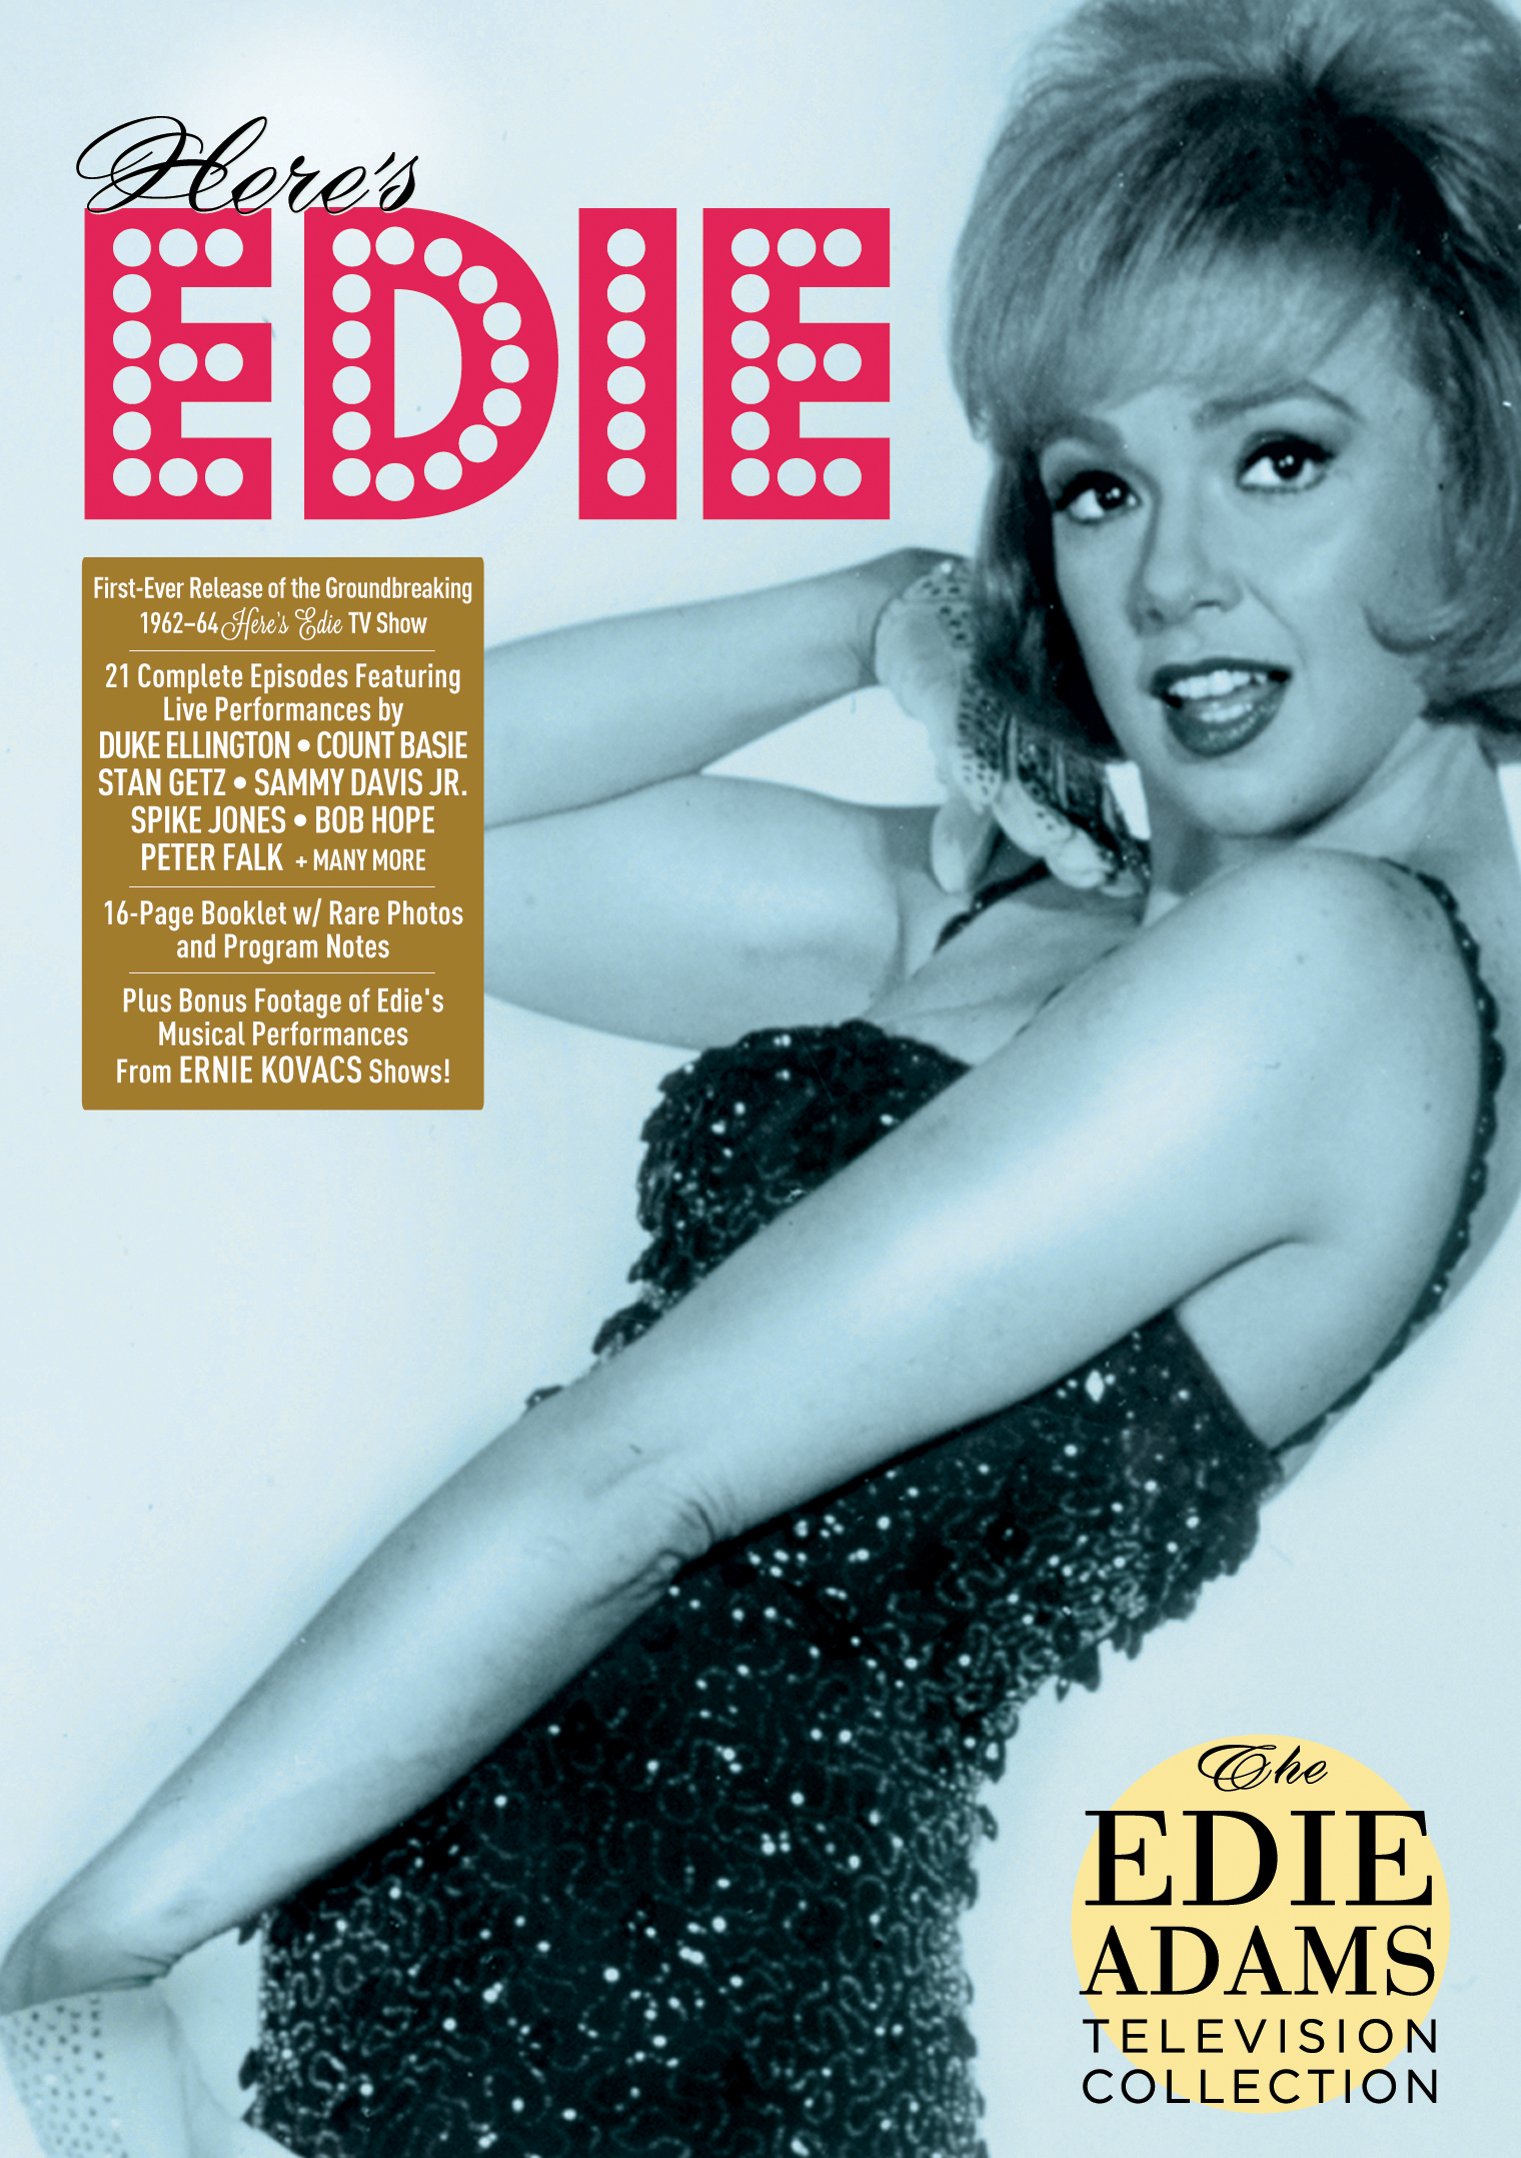 EDIE ADAMS RETROSPECTIVES CONFIRMED IN CONJUNCTION W/ DVD BOX SET